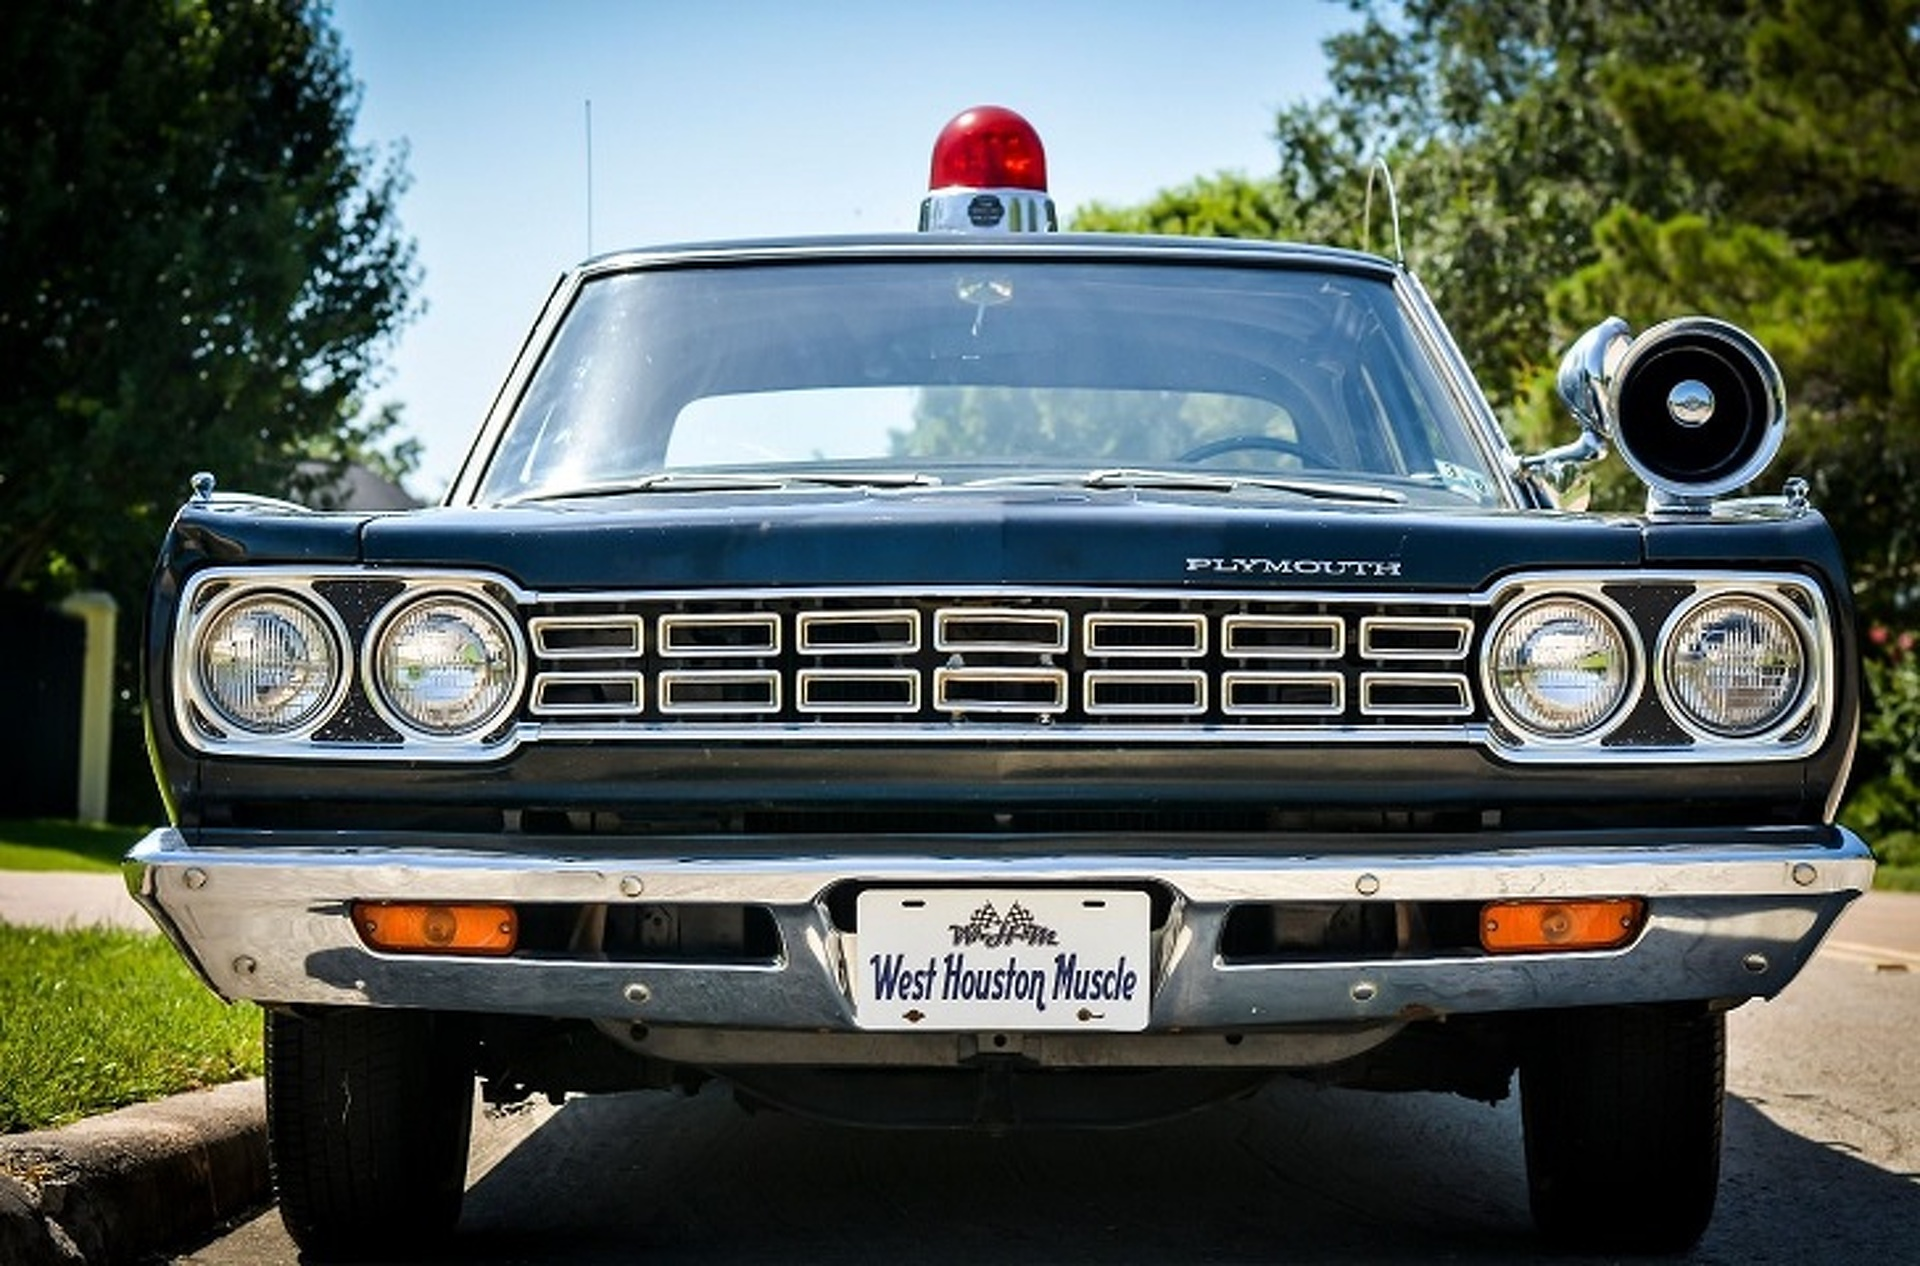 Drive The Thin Blue Line in This 1968 Plymouth Satellite Police Car